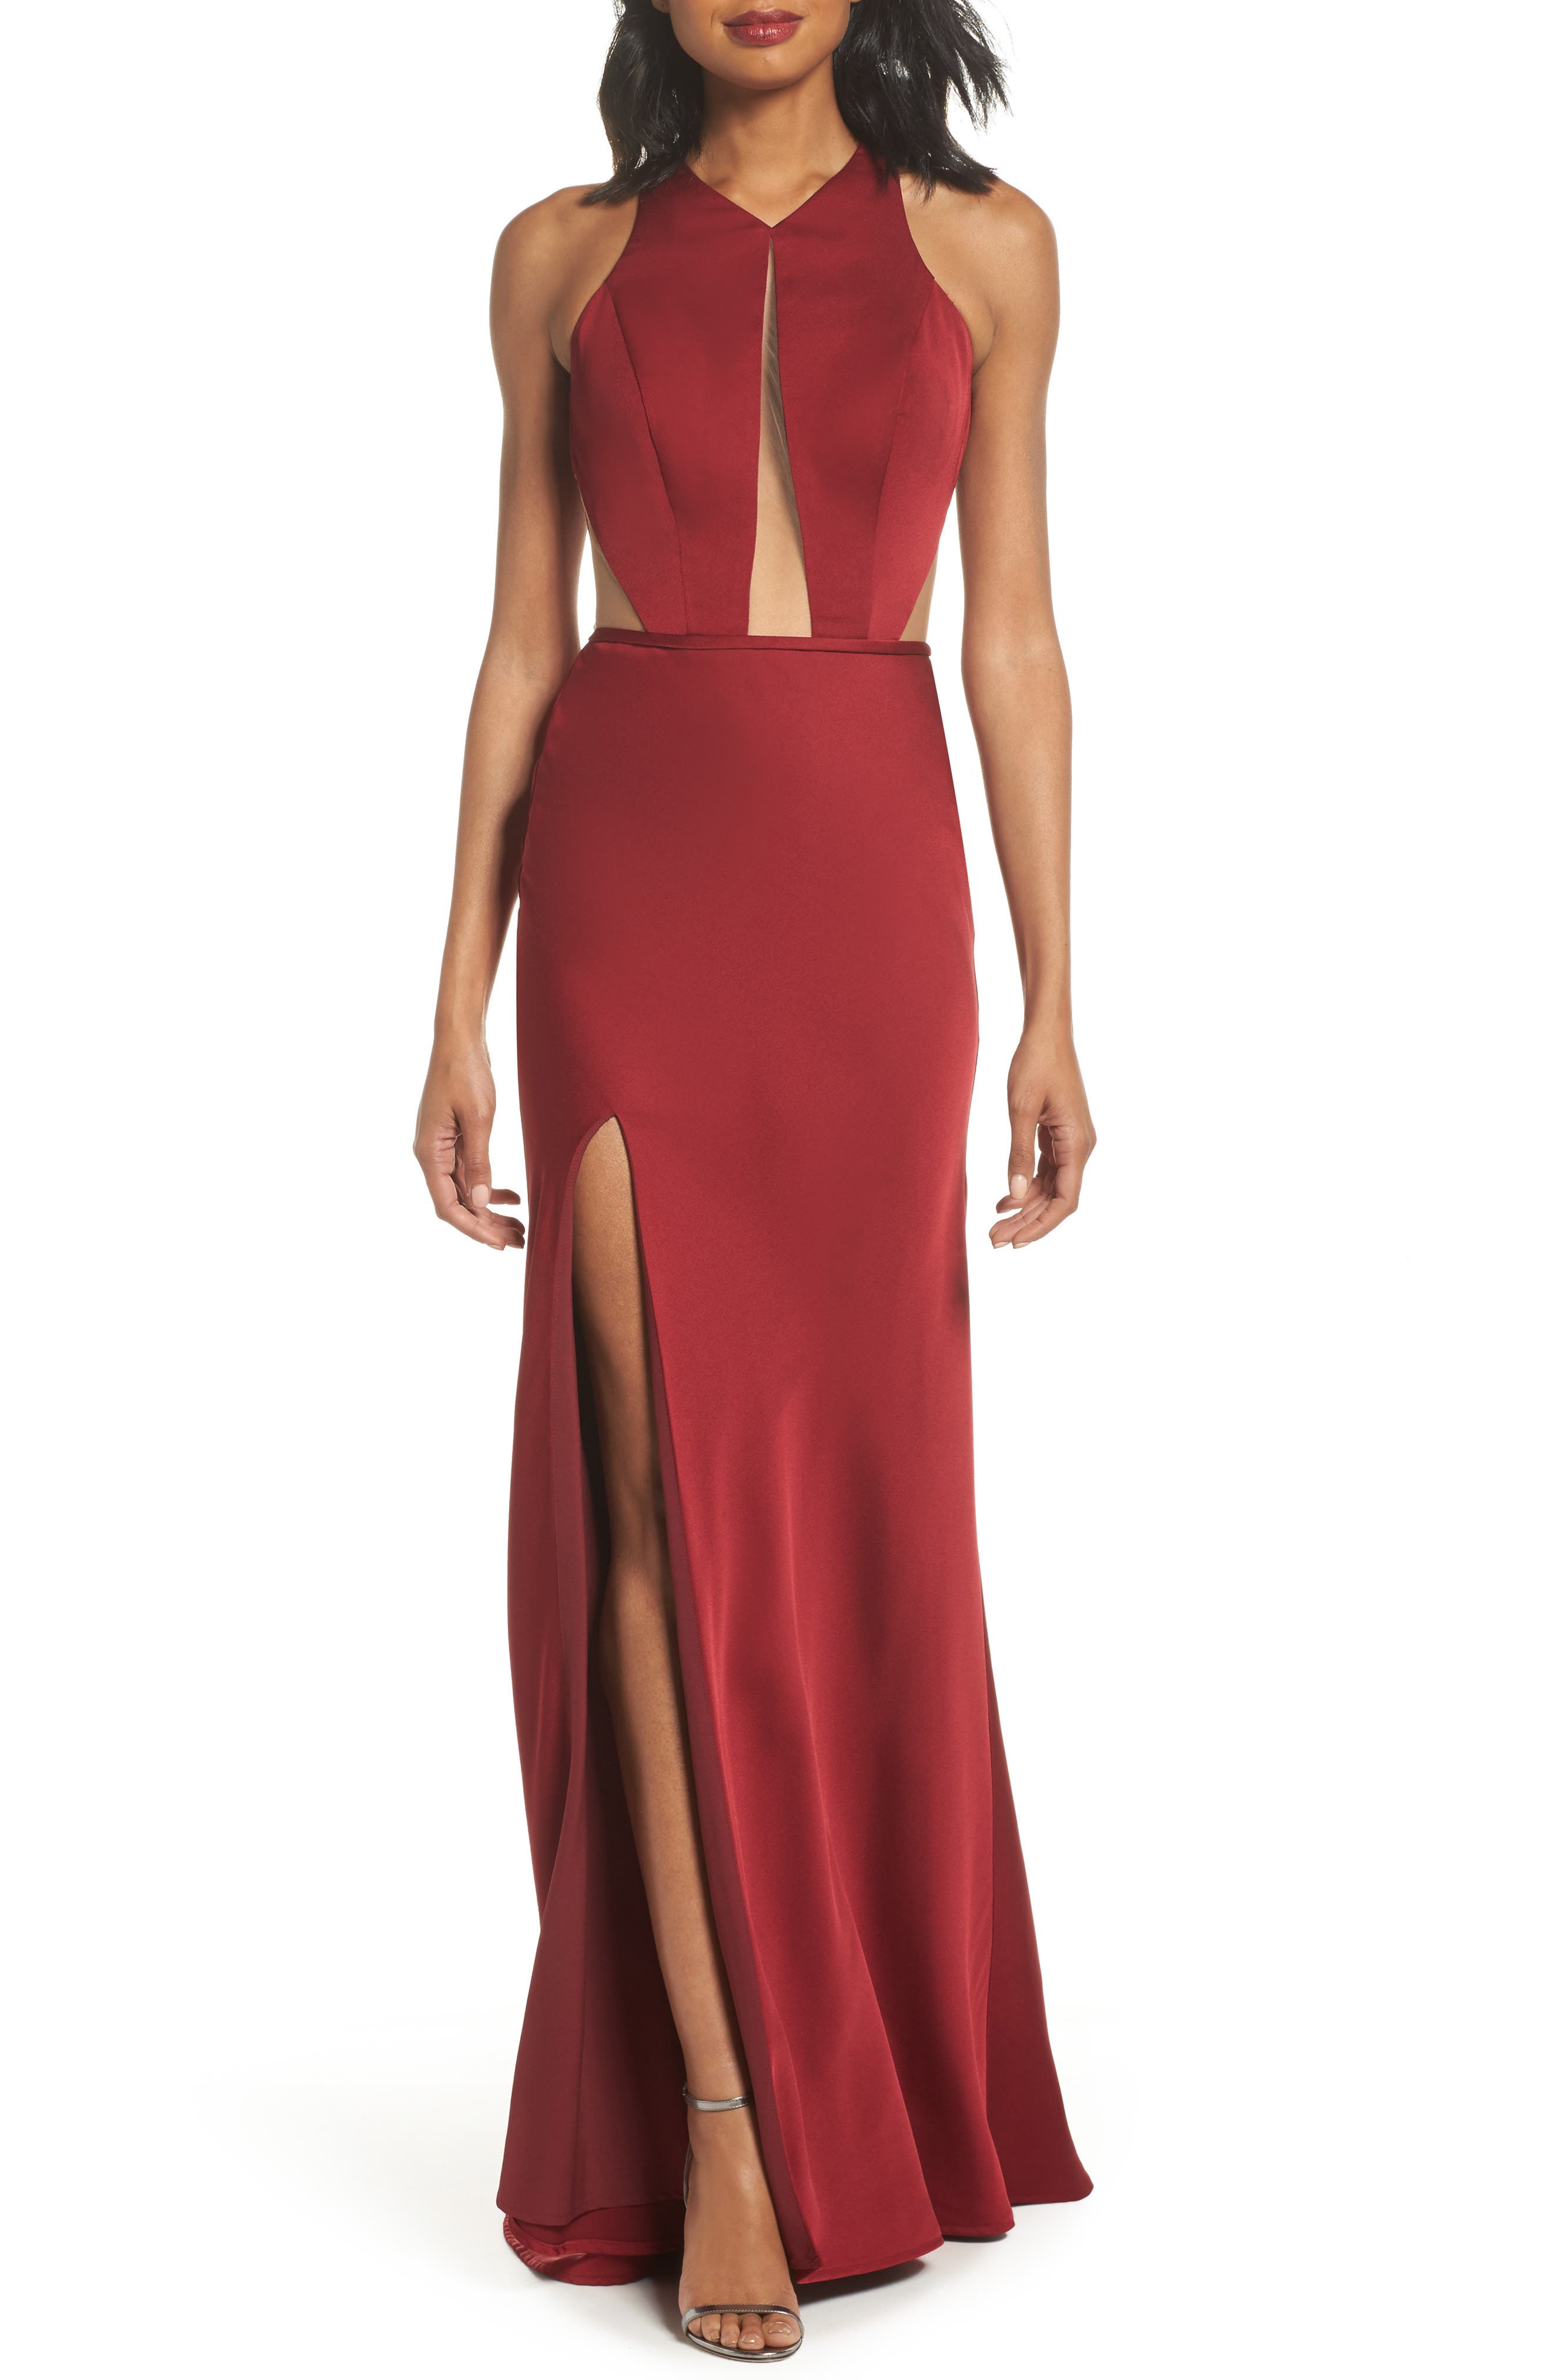 La Femme Cutout Detail Satin Gown, Burgundy